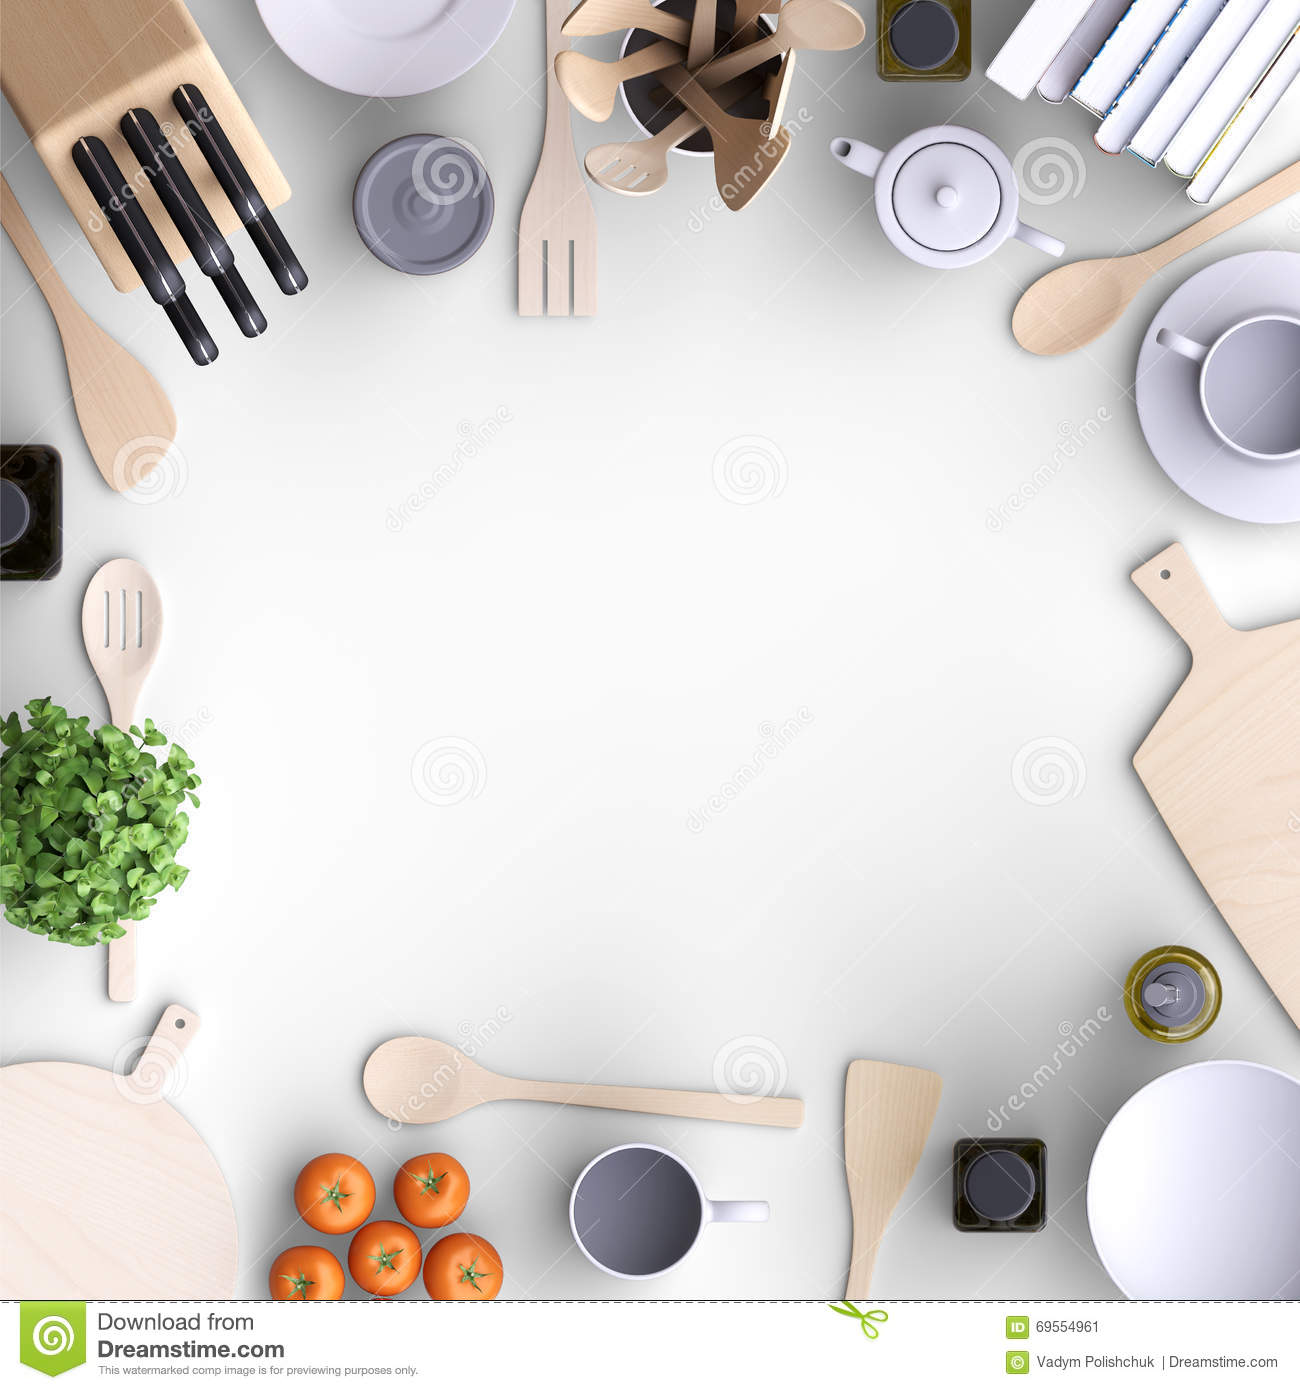 Kitchen View From Above : Branding mock up kitchen with table and kitchenware